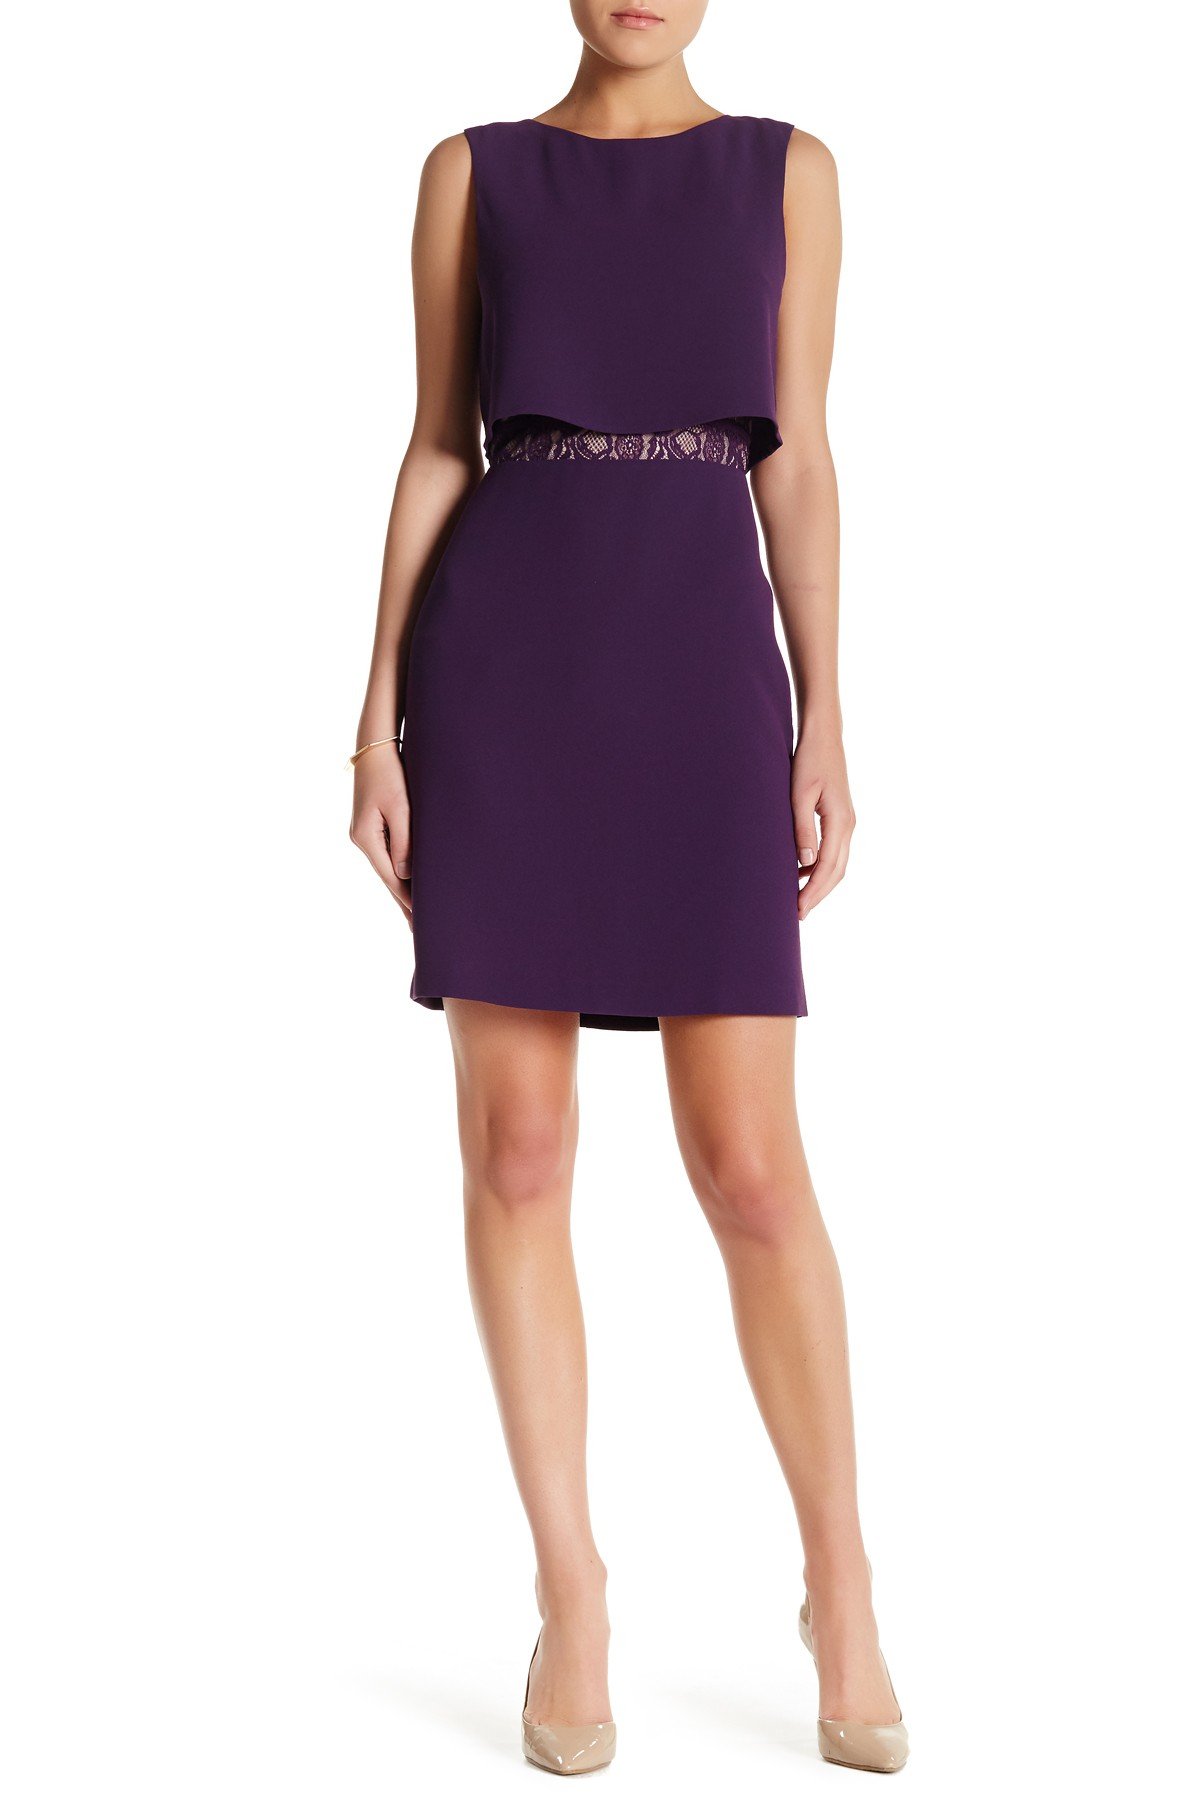 Marc new york lace inset dress in purple ryl purple for Nordstrom rack new york